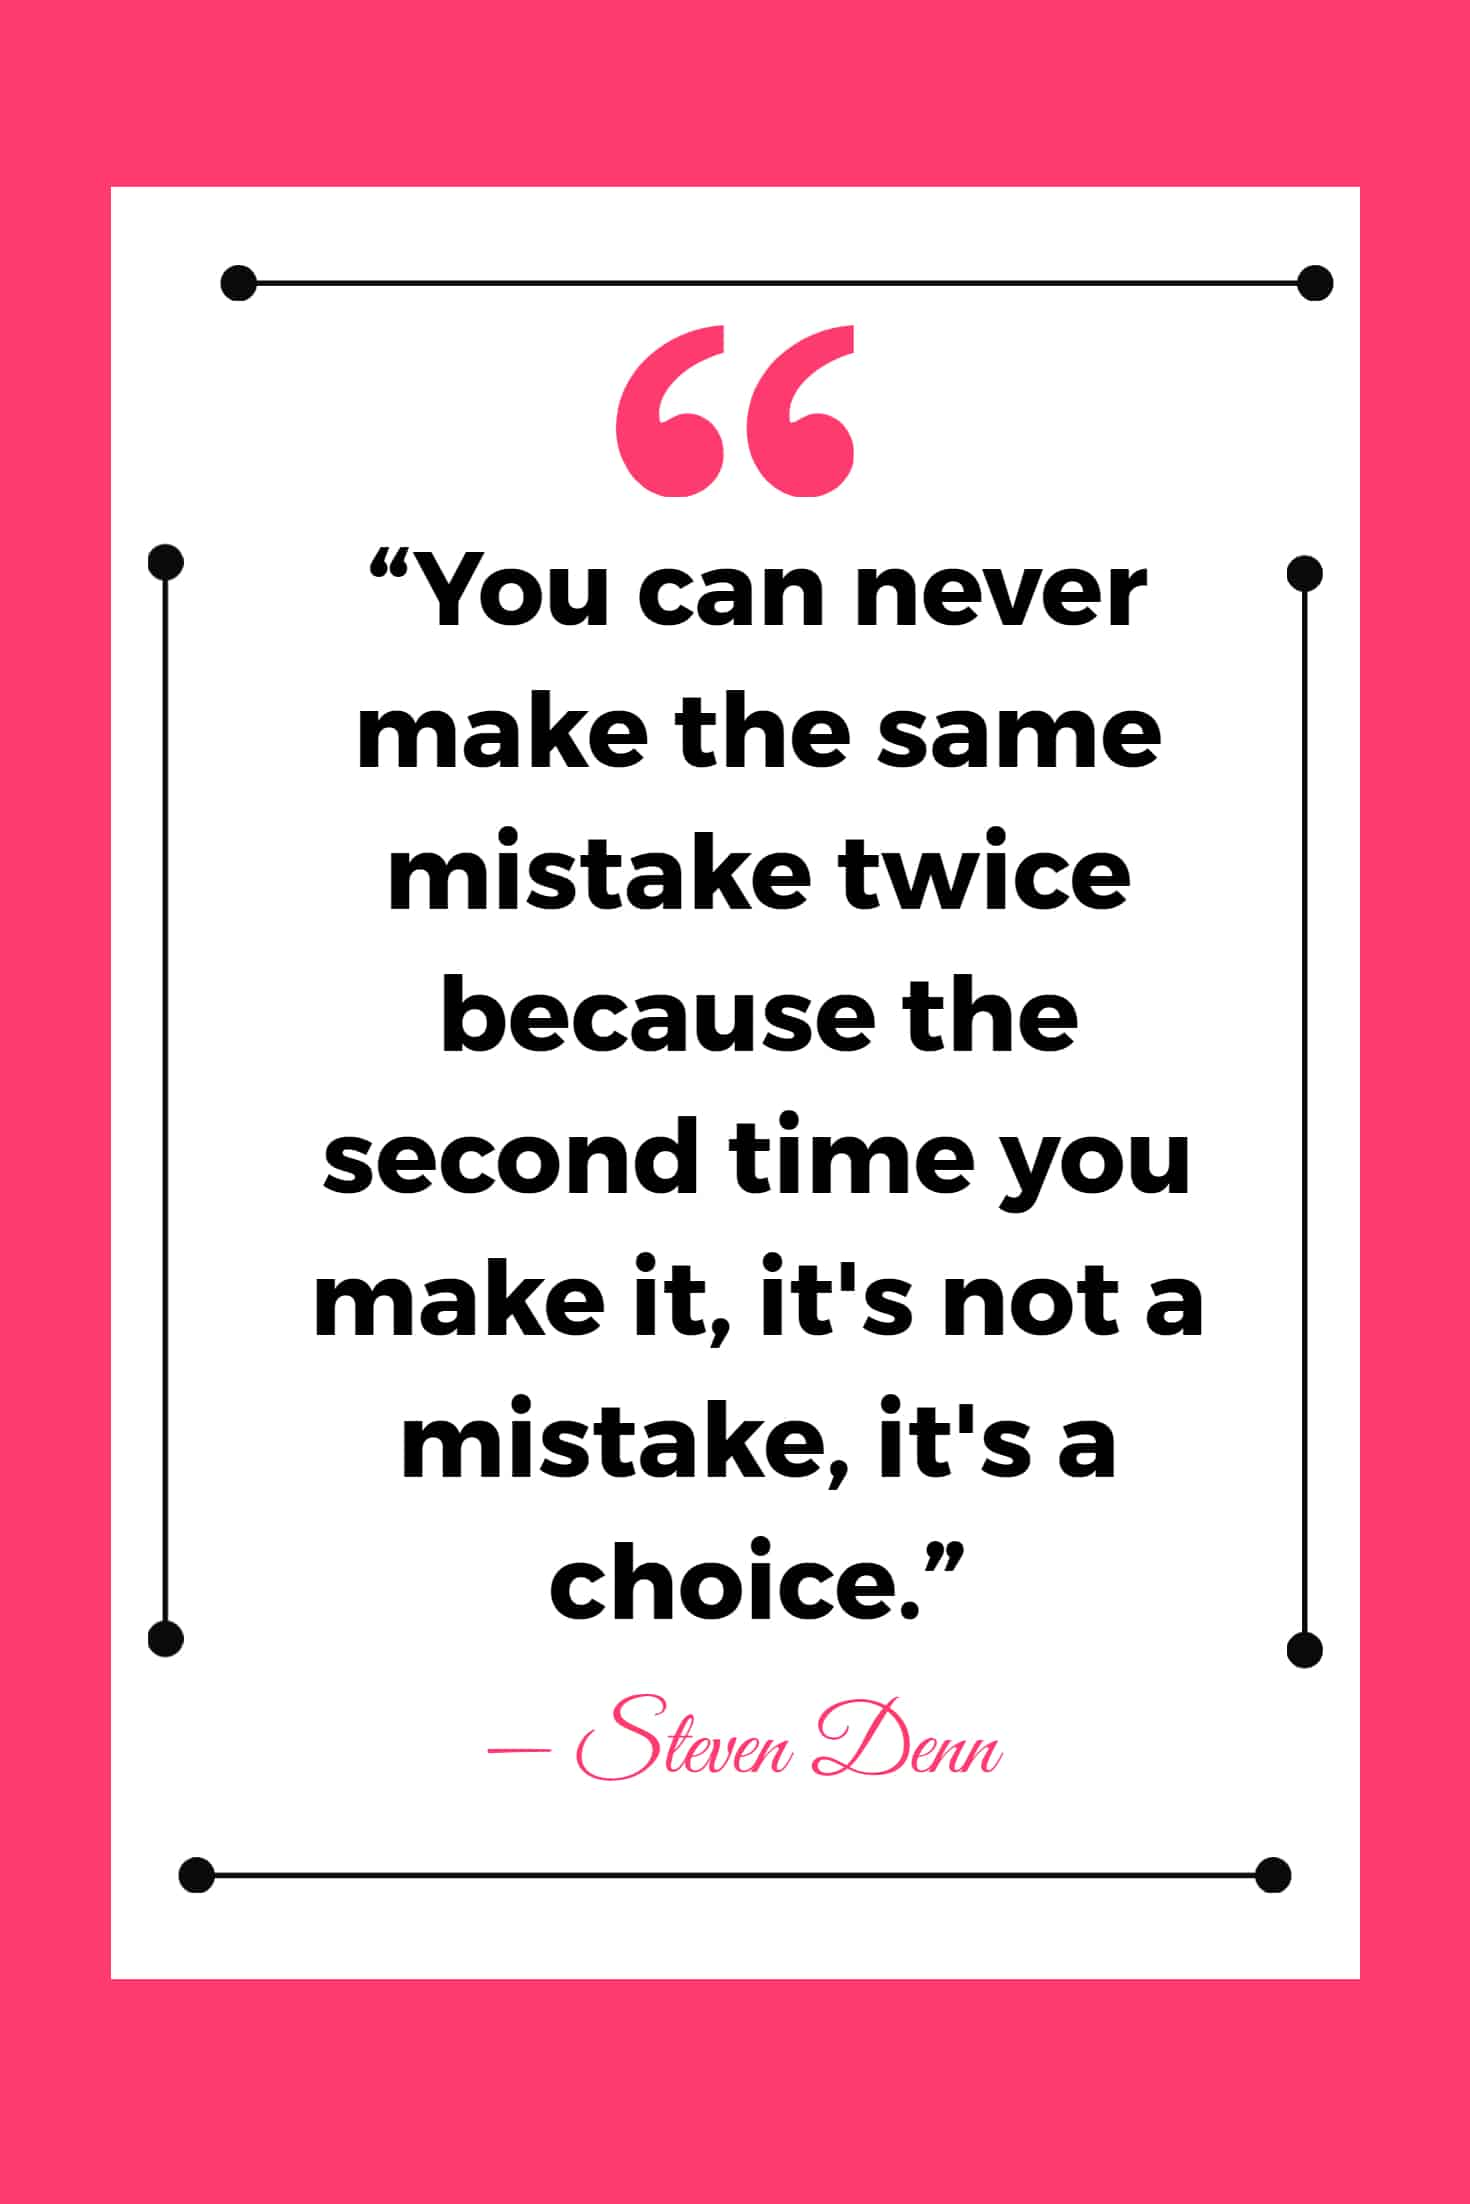 """""""You can never make the same mistake twice because the second time you make it, it's not a mistake, it's a choice."""" ― Steven Denn"""